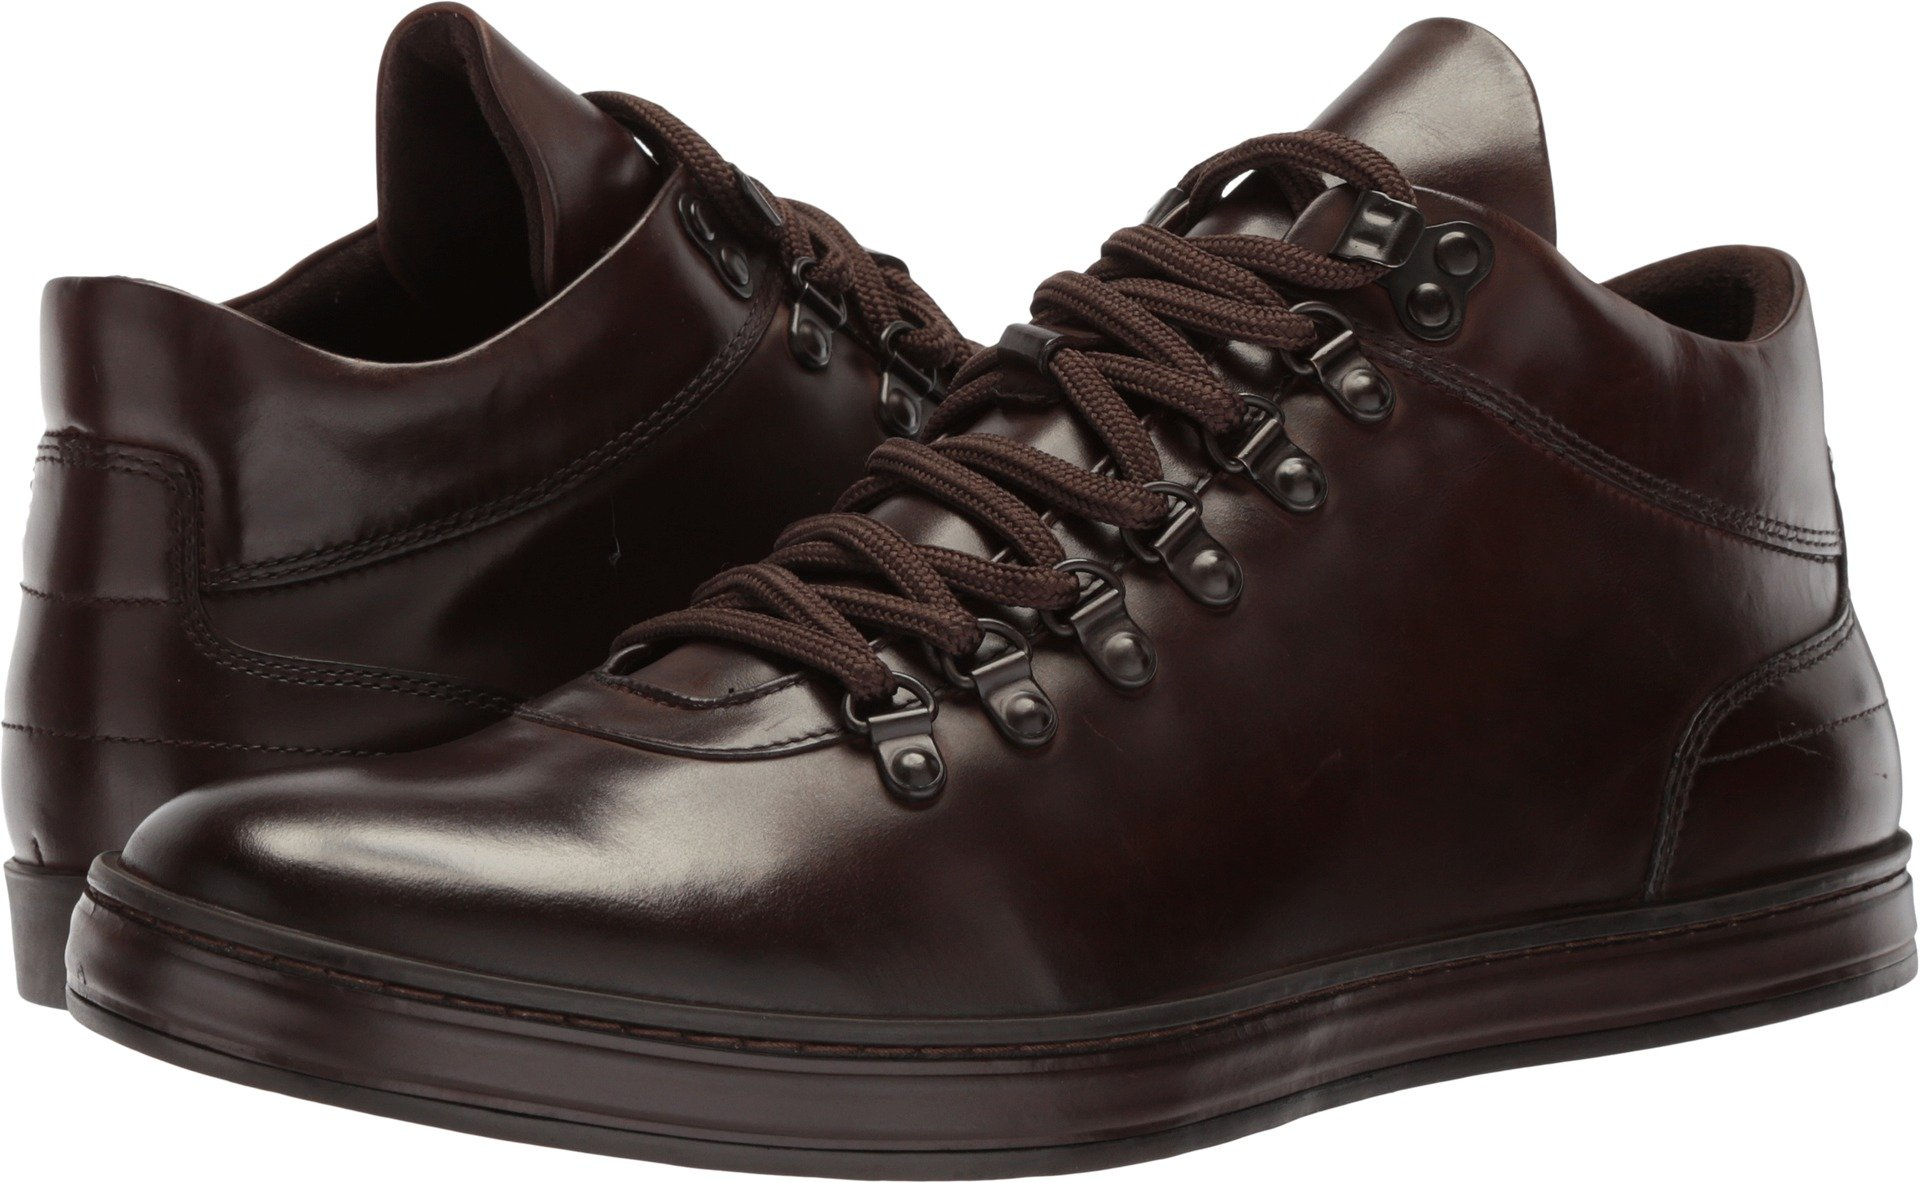 Kenneth Cole New York Men's Brand Tour Pb Sneaker, Brown Leather, 12 M US